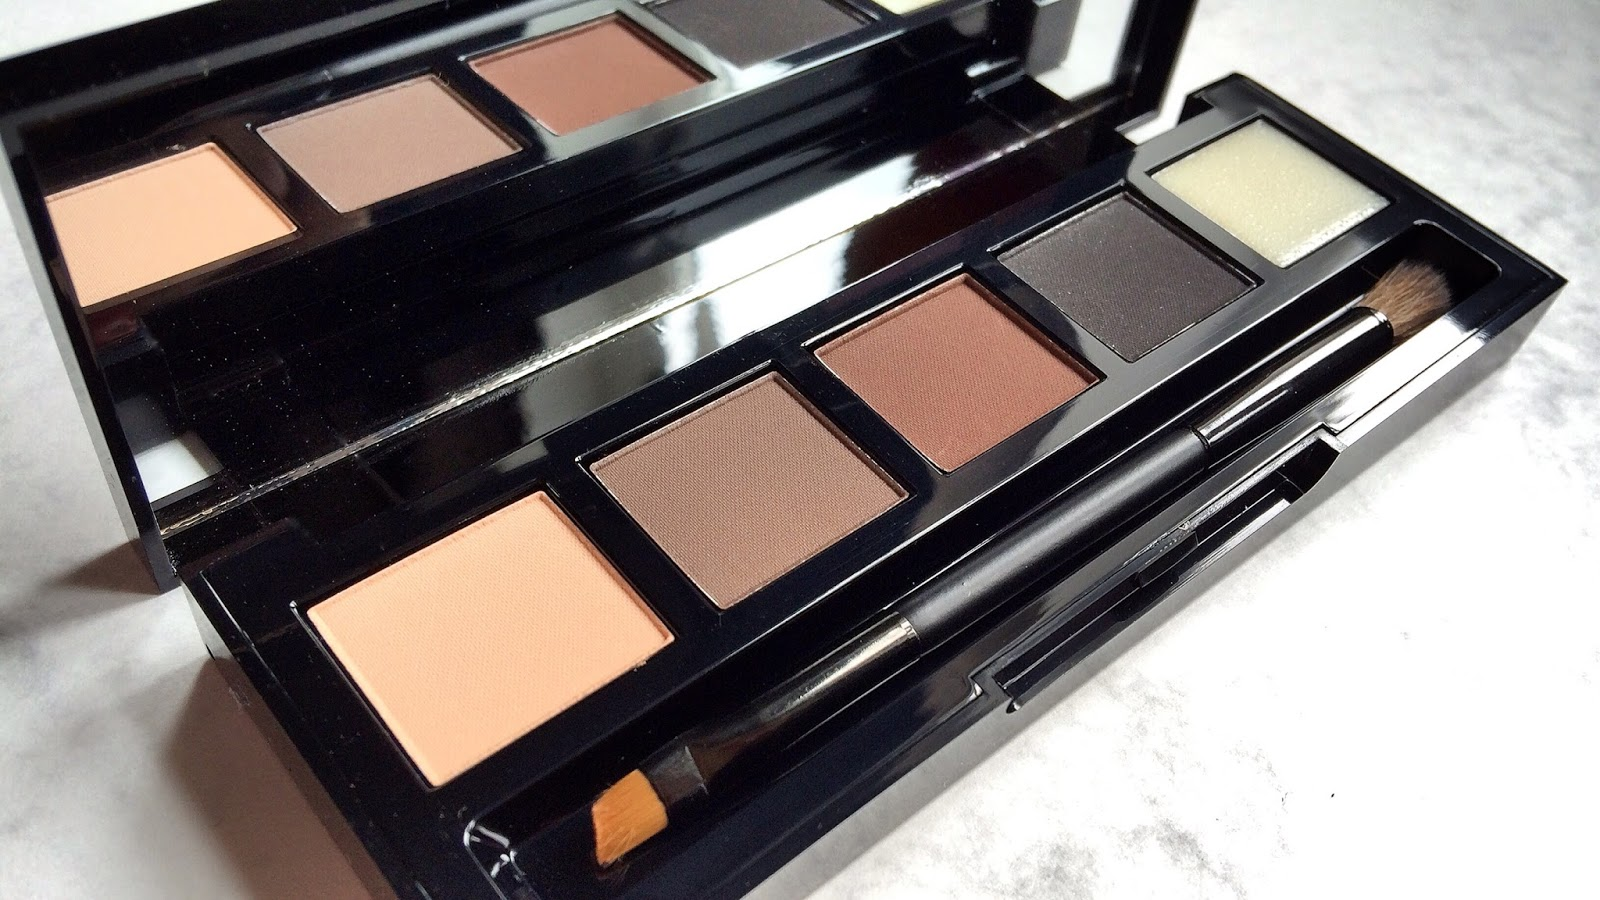 HD Brows palette eyebrows